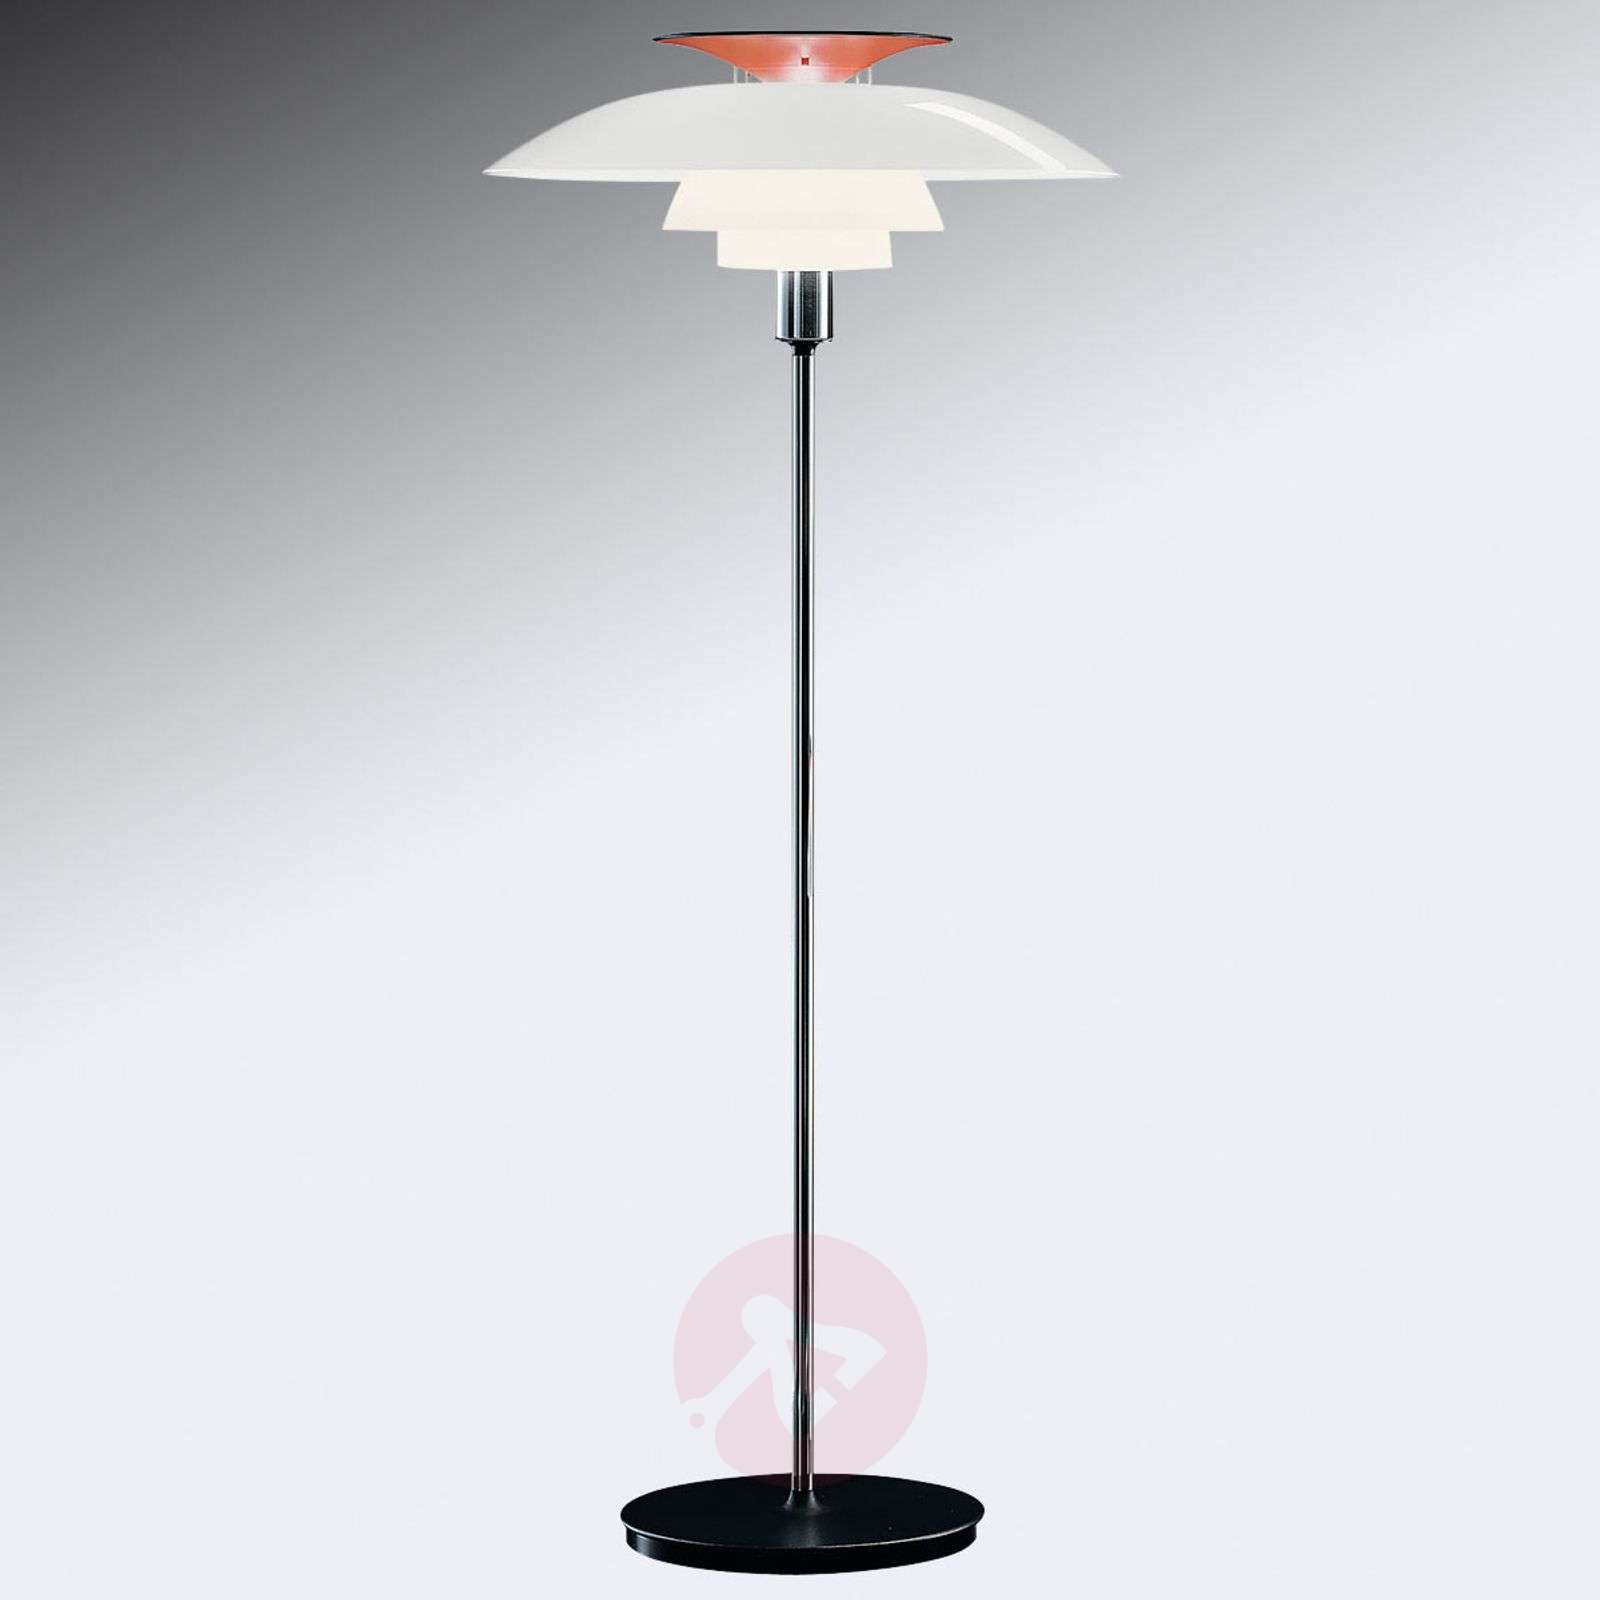 new product 42457 8d171 Louis Poulsen PH 80 - designer floor lamp